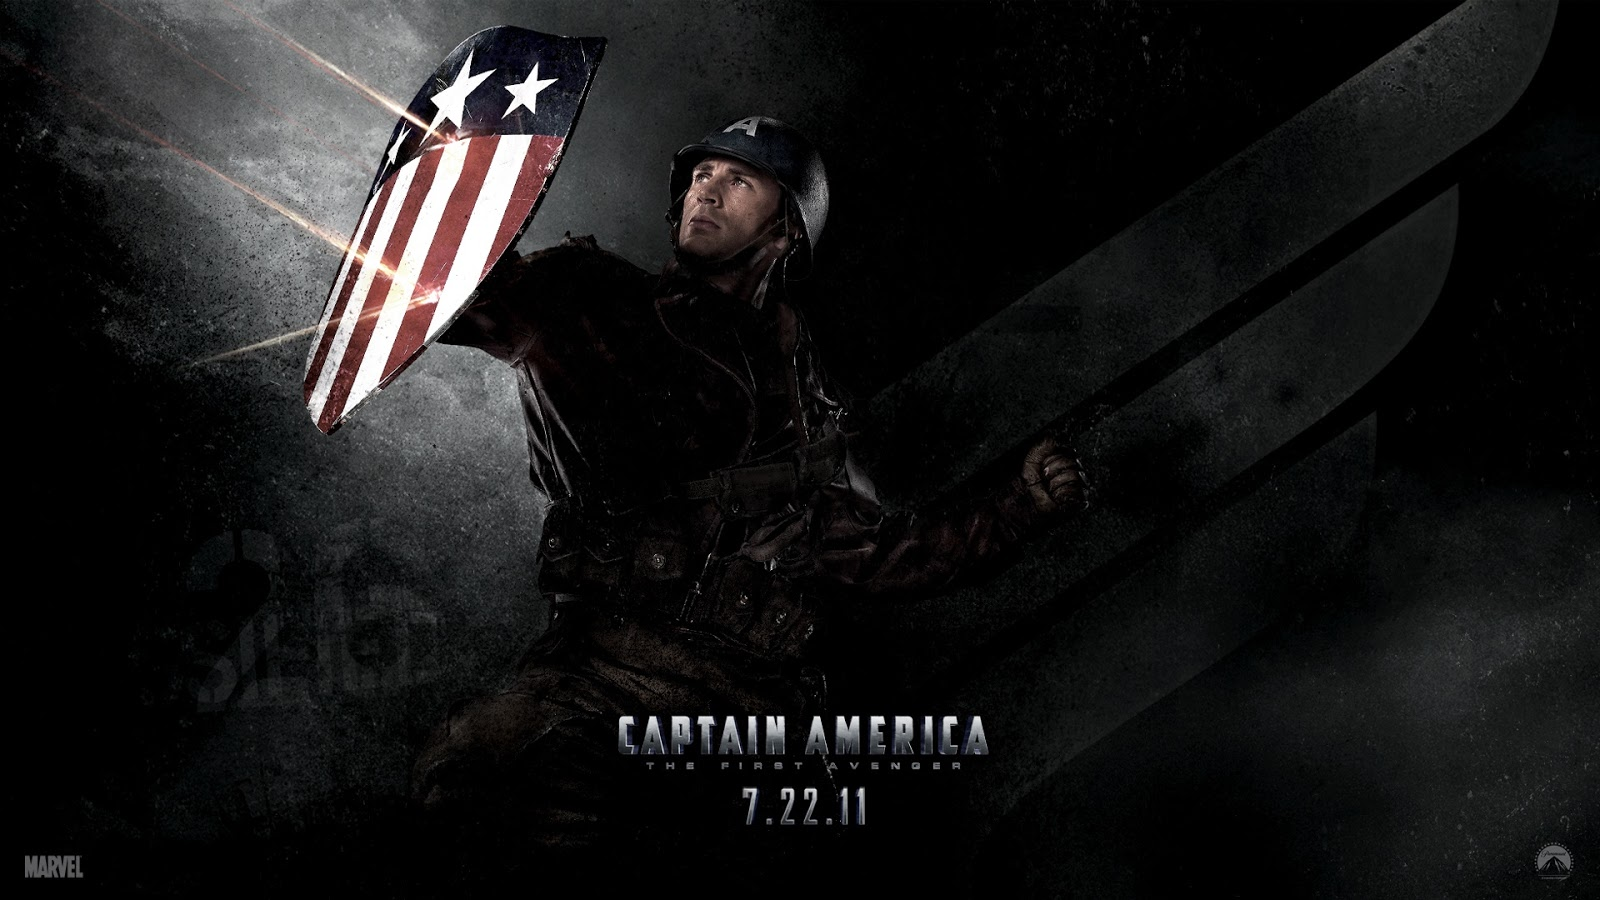 Chris Evans Captain America Movie